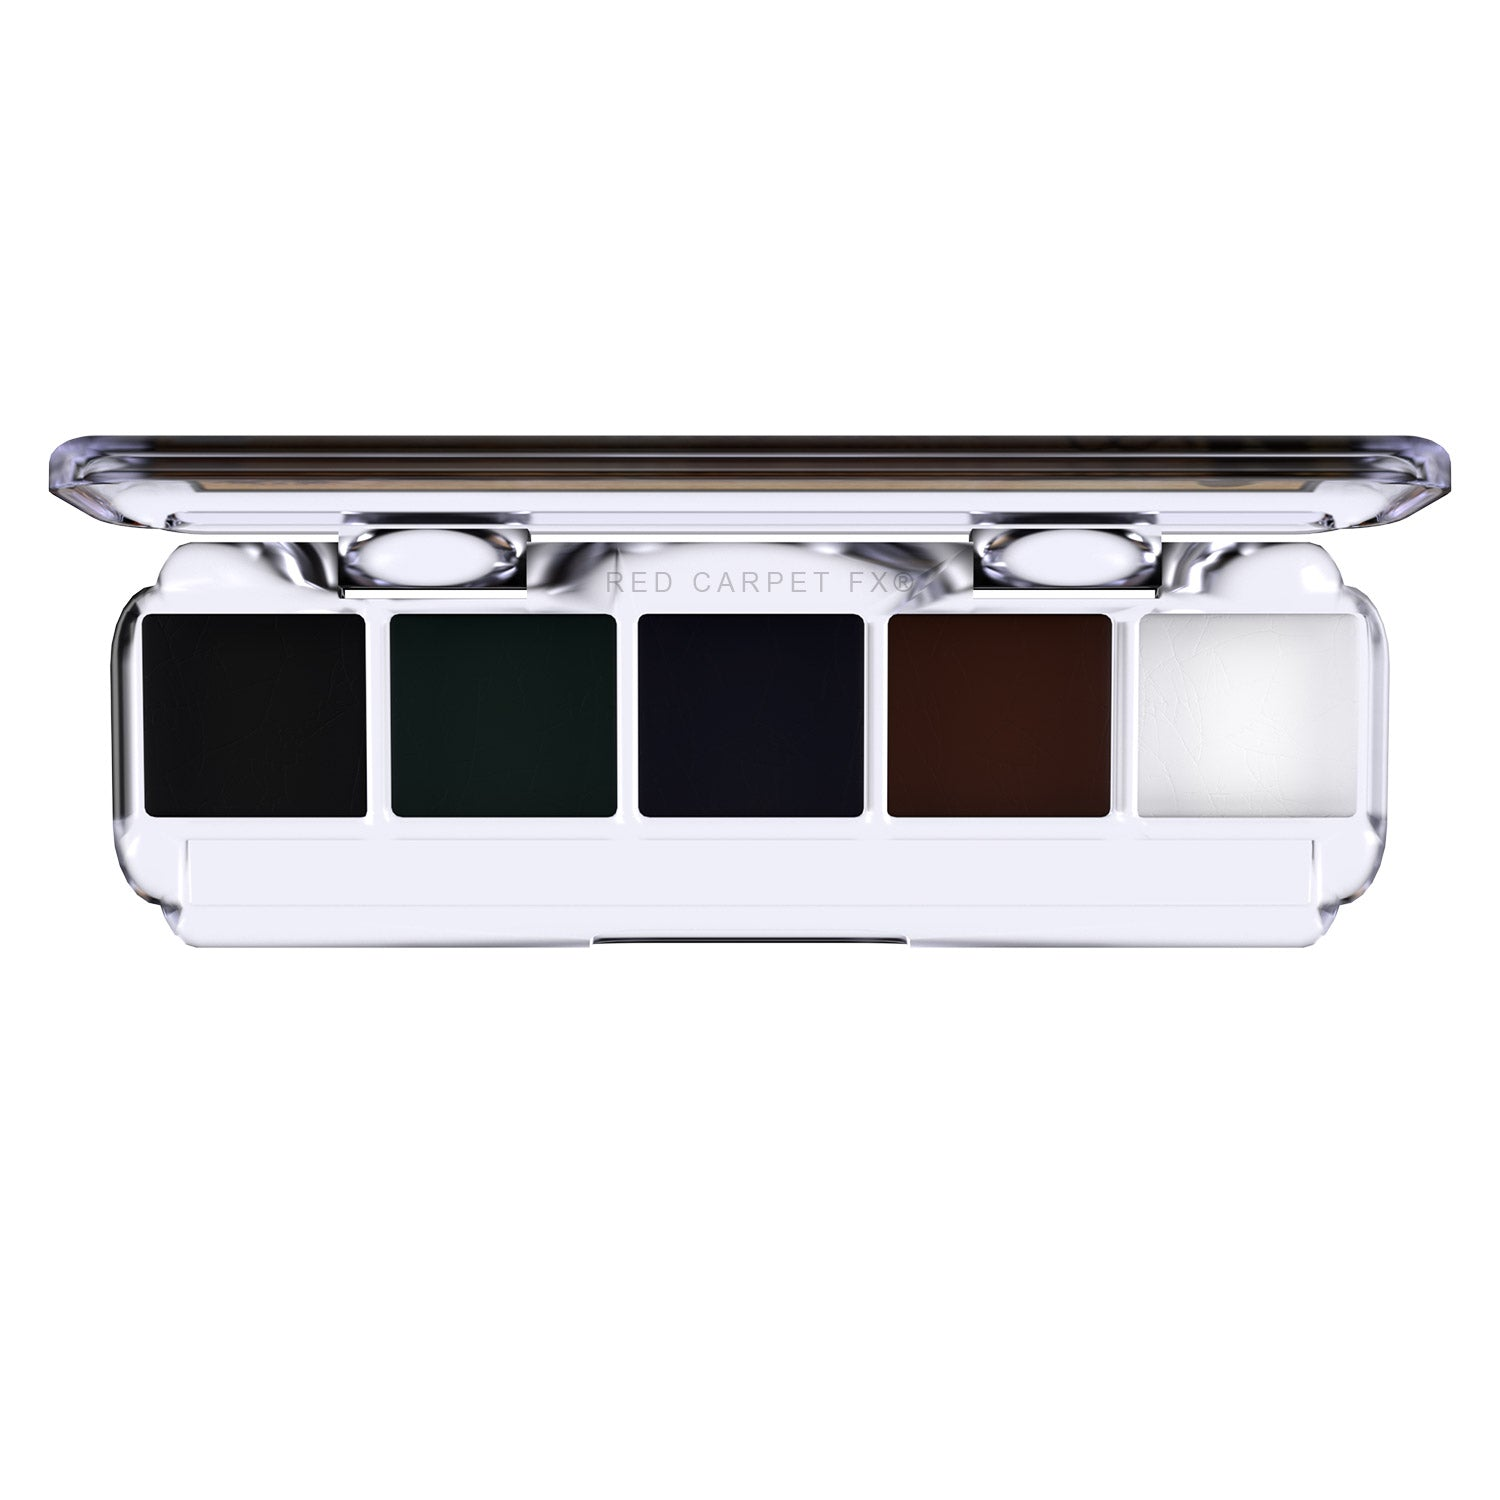 Dashbo Ultimate Special Edition 5 Colour Palette - The Cheshire Tatt - Red Carpet FX - Professional Makeup